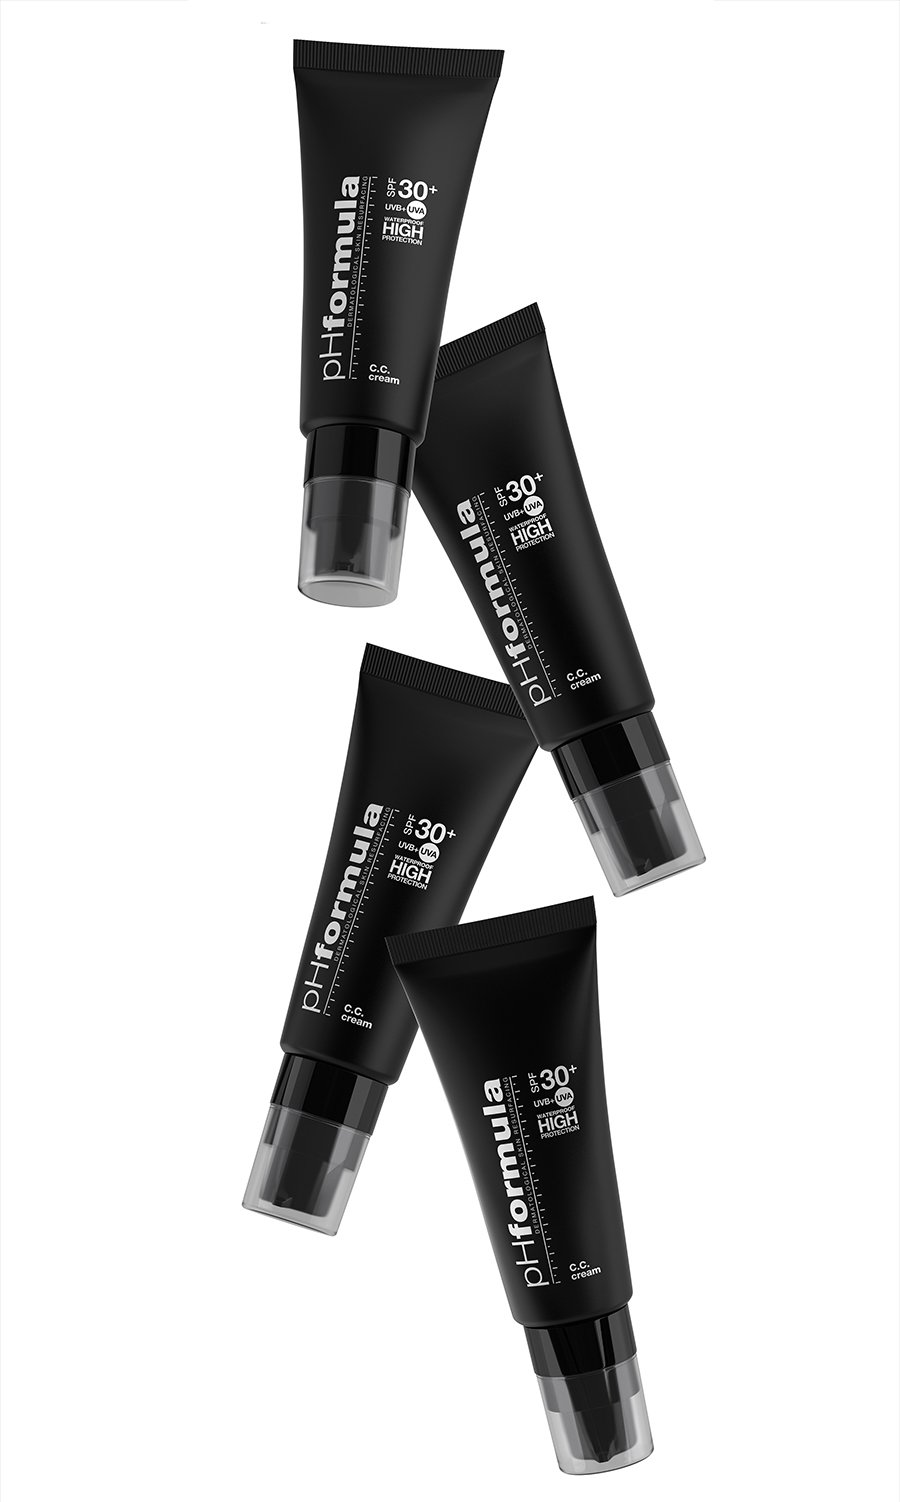 Introducing pHformula's new complexion protection 1